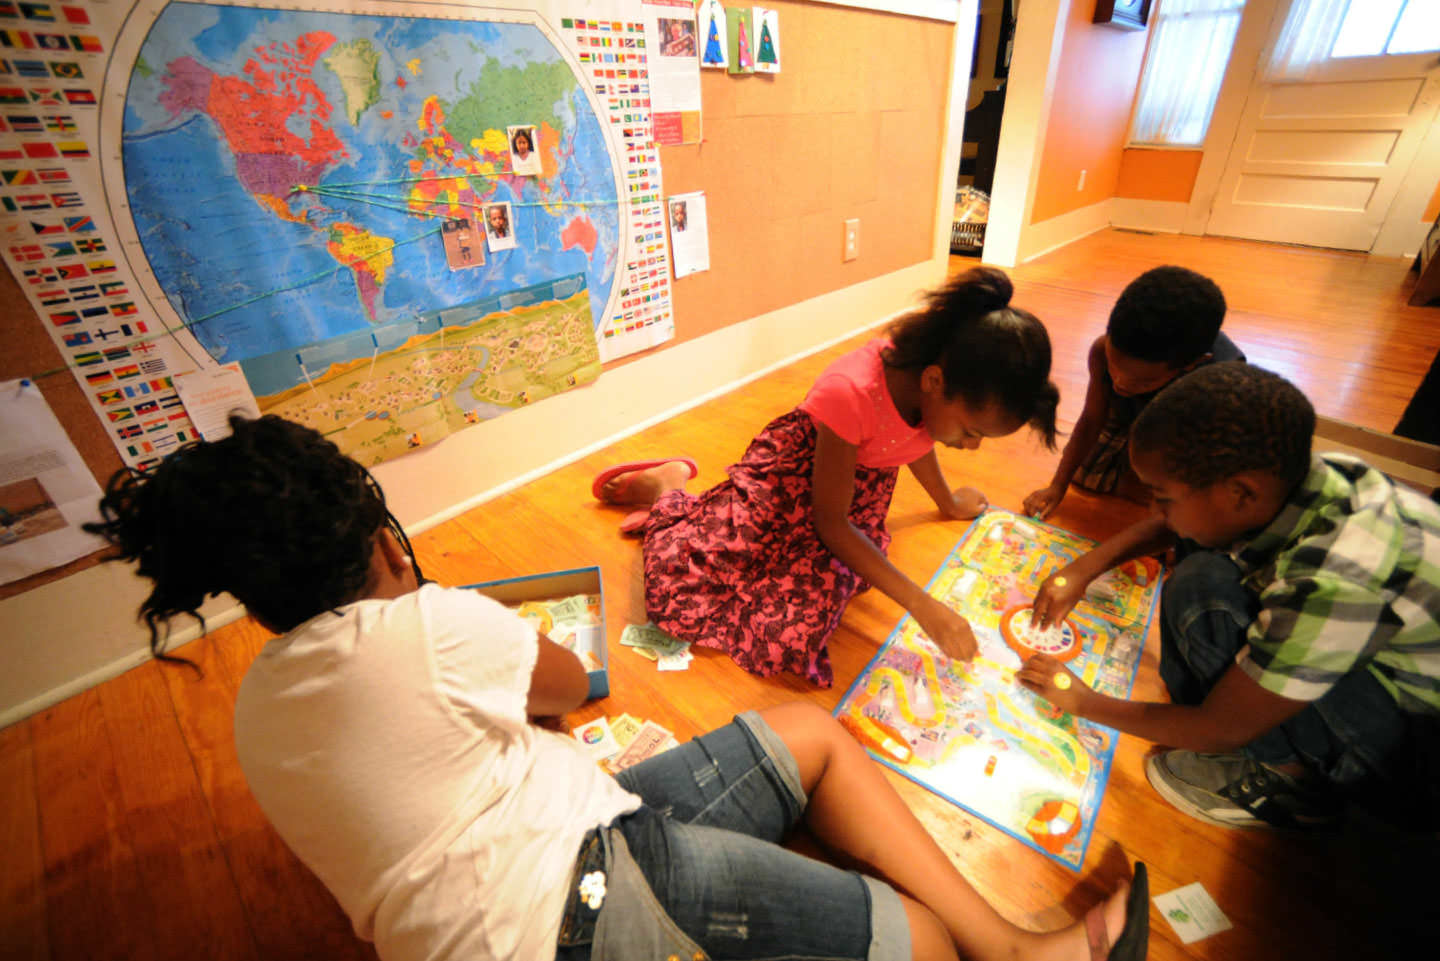 Simone Thomas, Fantazia Savage, Jayden Thomas, and Derrick Wilder play below a Brown House map marking the places their sponsored children live.